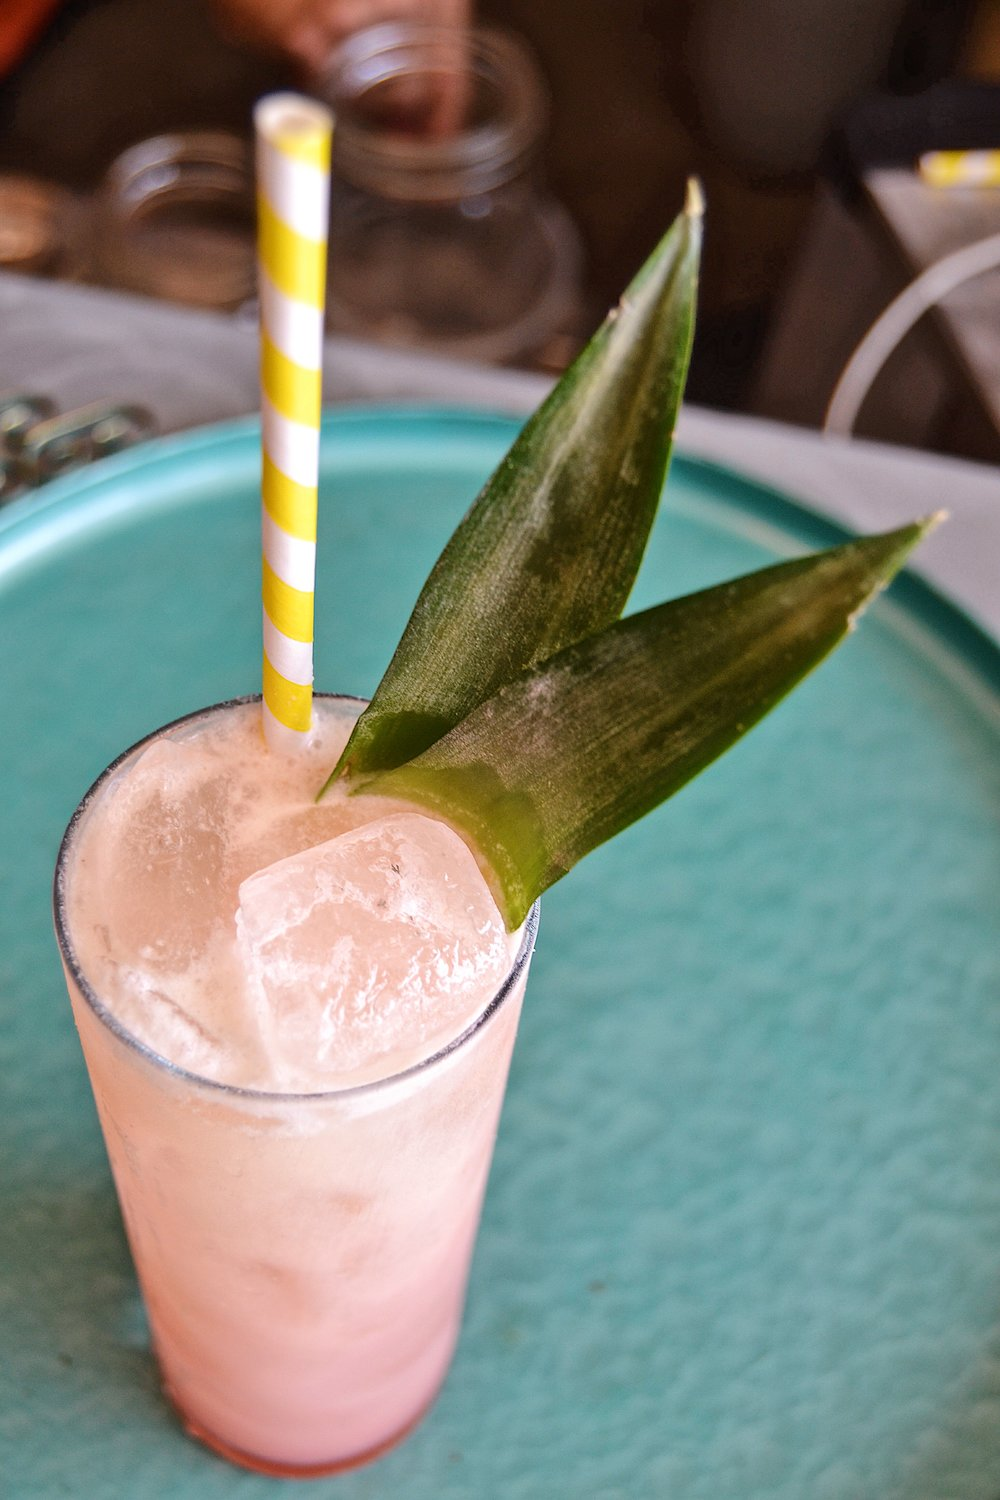 AMERICAN FLAMINGO Go birds. Aquavit, Funky Rm, Passionfruit Liqueur, Jackfruit-Coconut Syrup, Lime Juice. Topped with Dock Street Summer in Berlin. $12